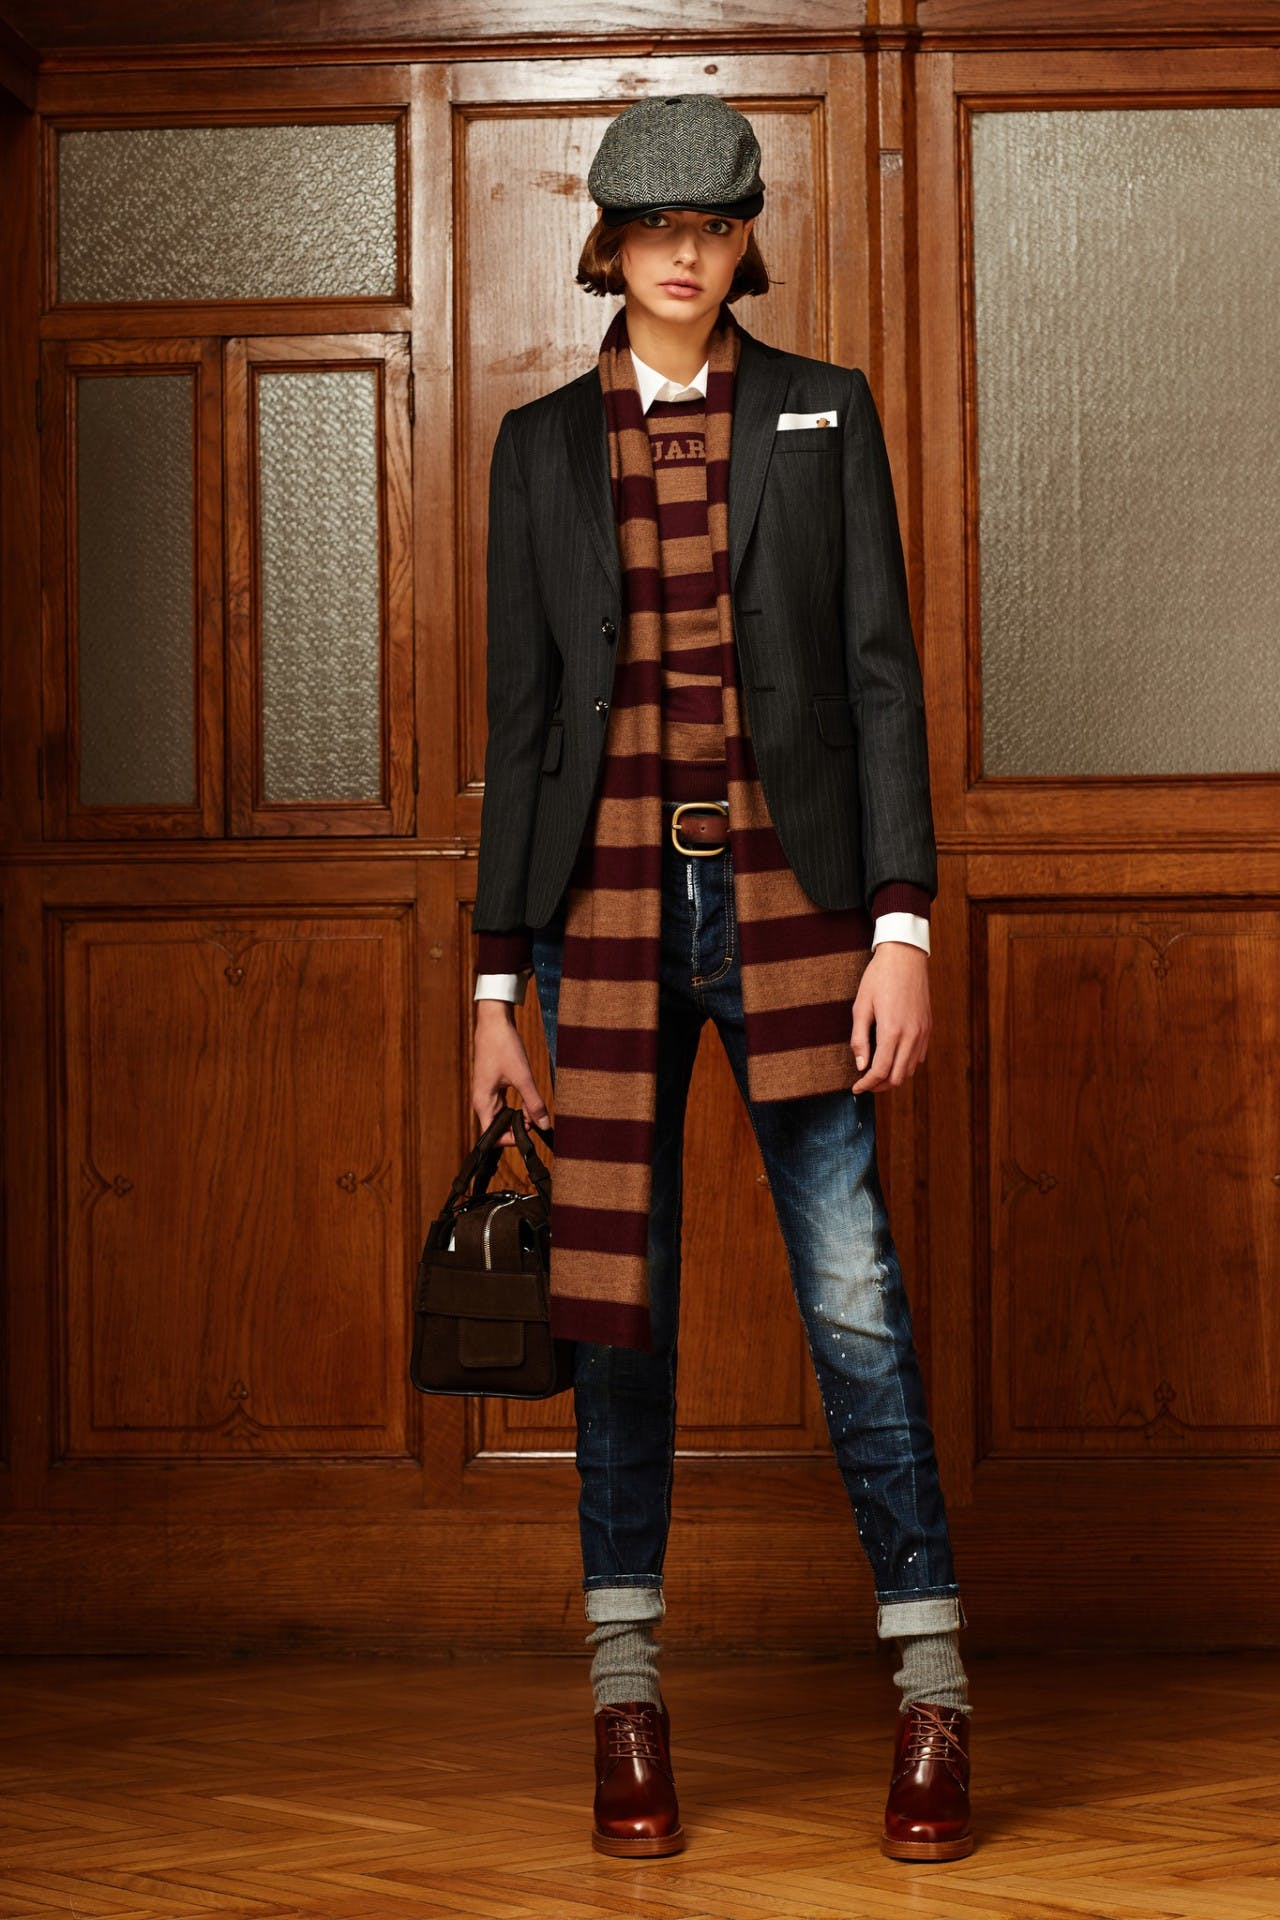 dsquared2 pre fall milan fashion runway backstage pre order showroom trunk show womenswear blazer